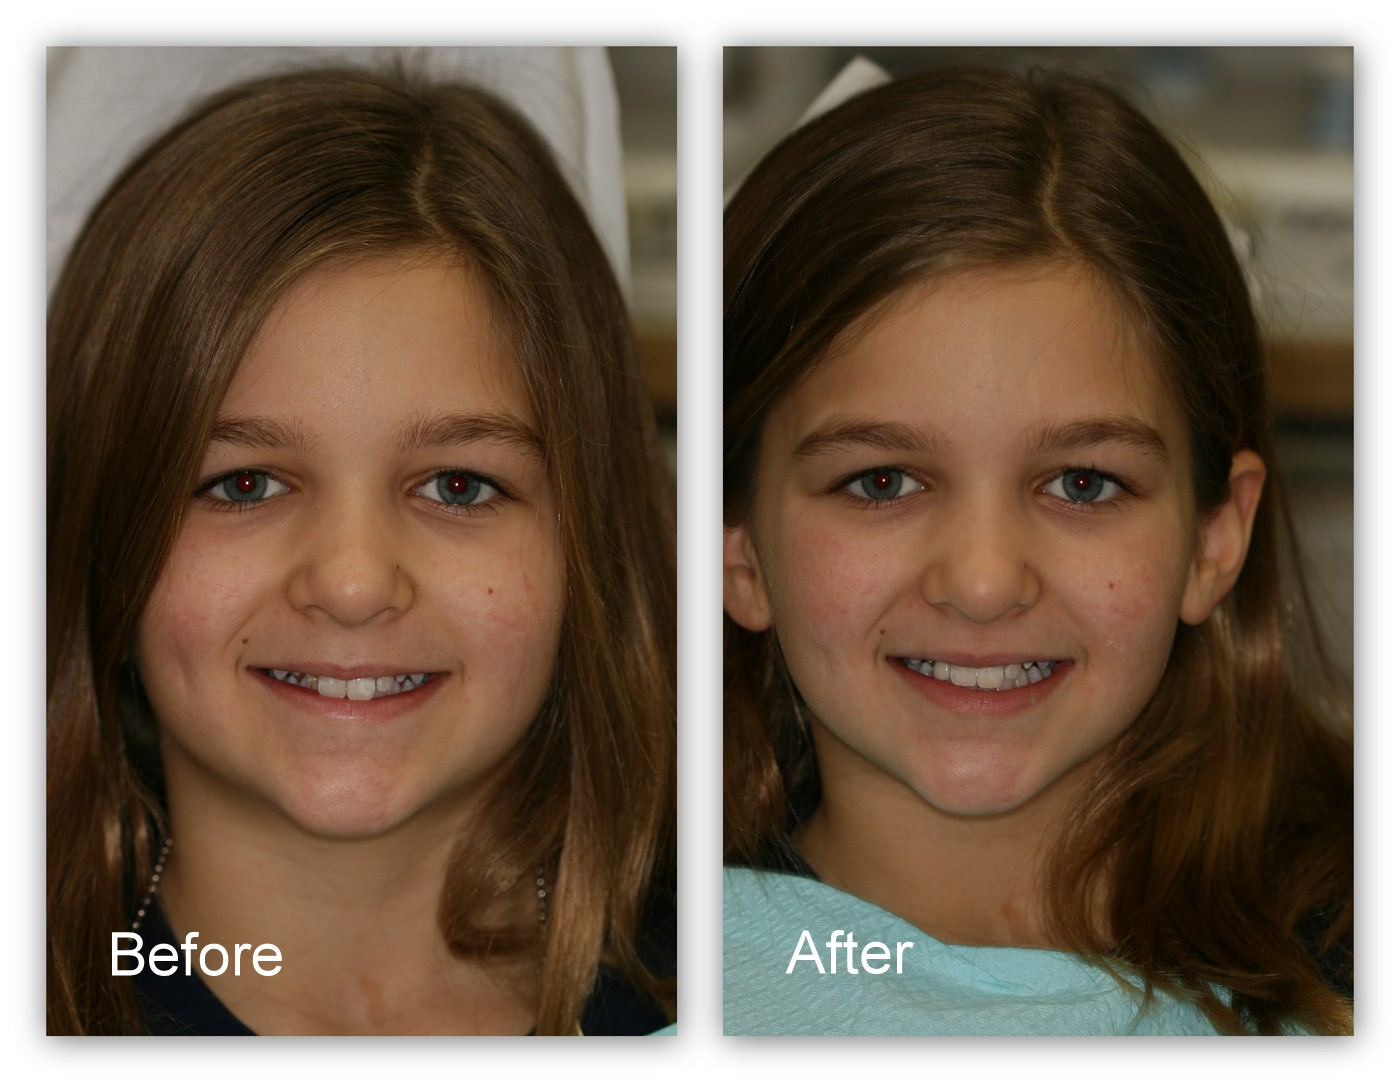 Before- This young patient has an unusually small tooth to the left of her two front teeth. After- Dr. Jack Hosner of Portage, MI built up this tooth and shaped it to be more visible in her smile.